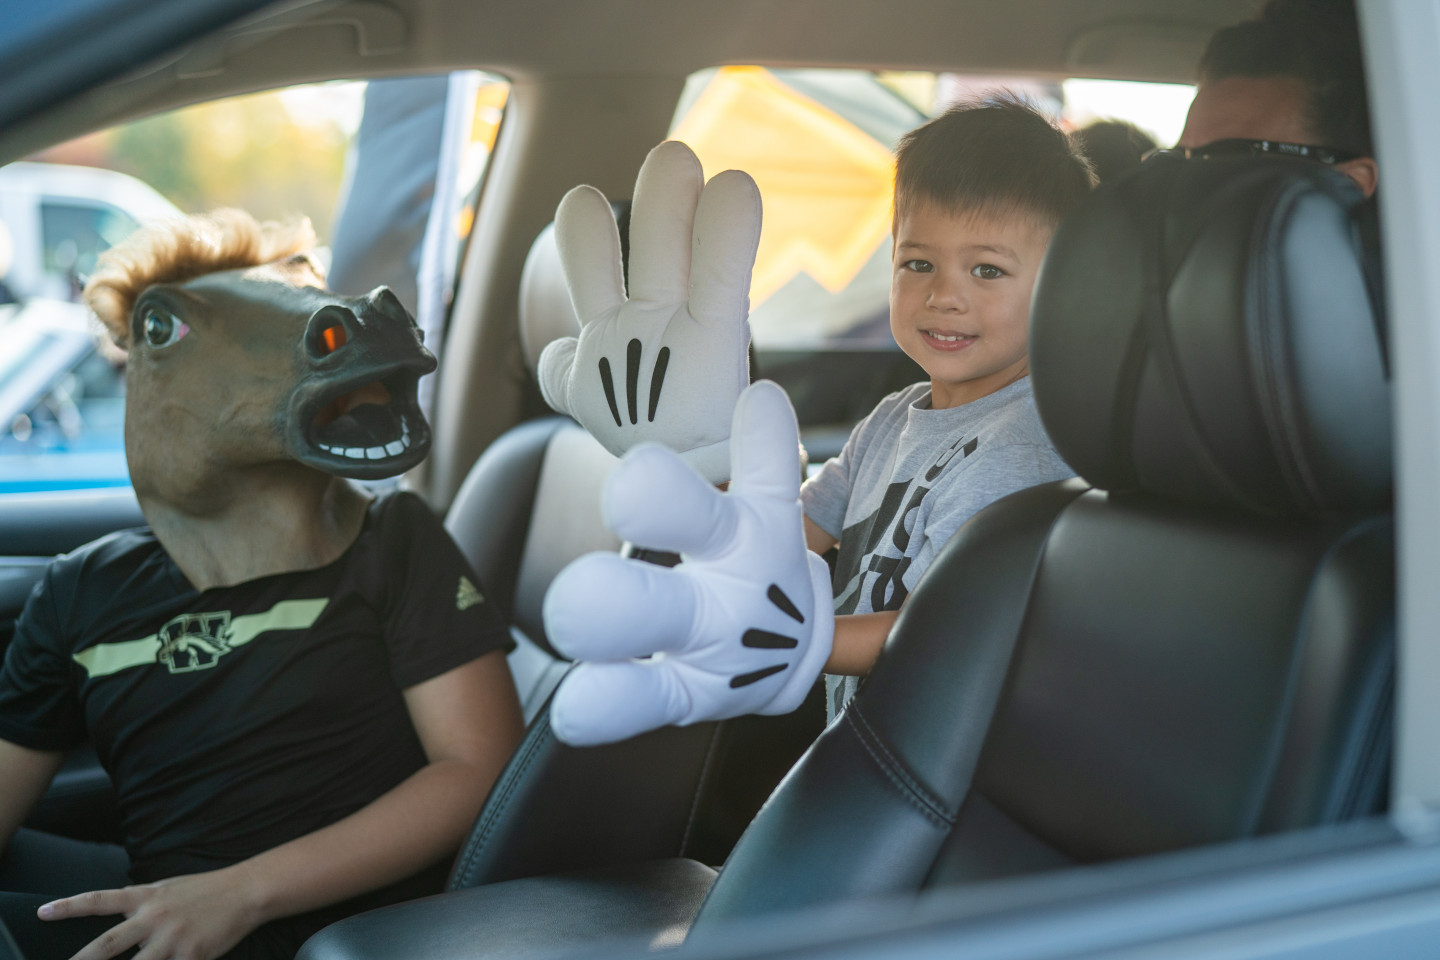 A young Bronco fan wearing large Mickey Mouse gloves.